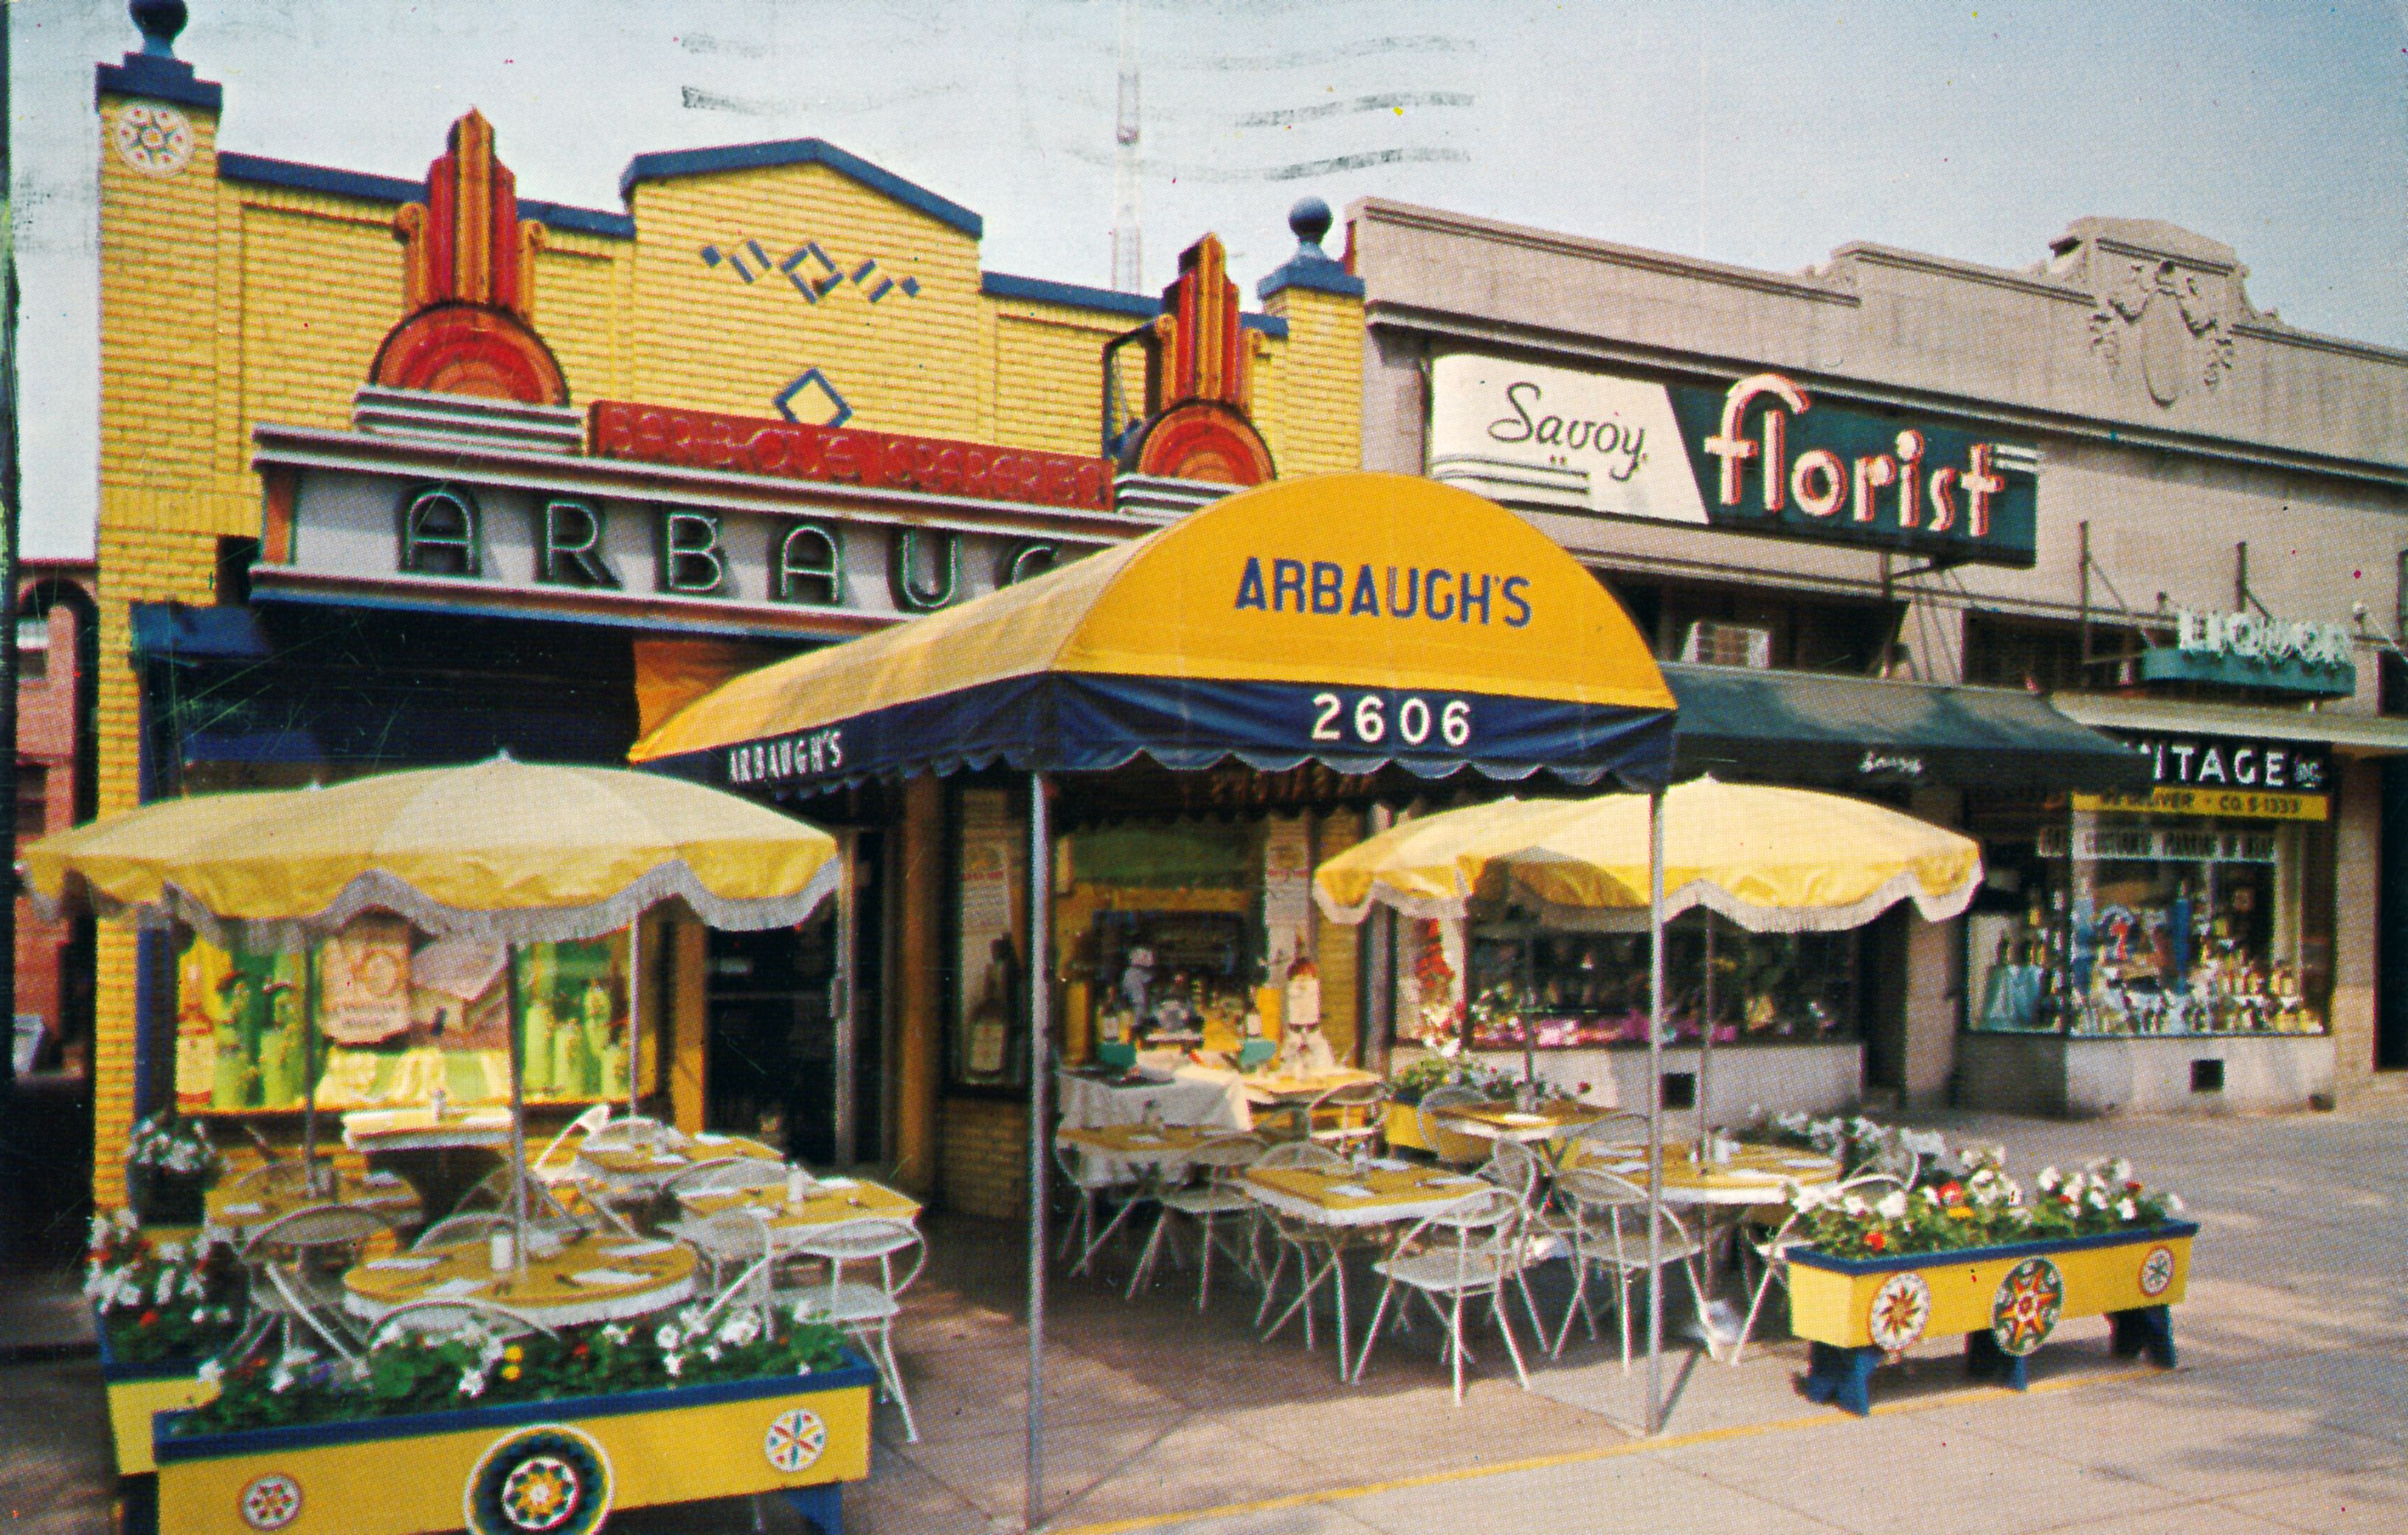 Arbaugh's, at 2606 Connecticut Avenue NW in Woodley Park